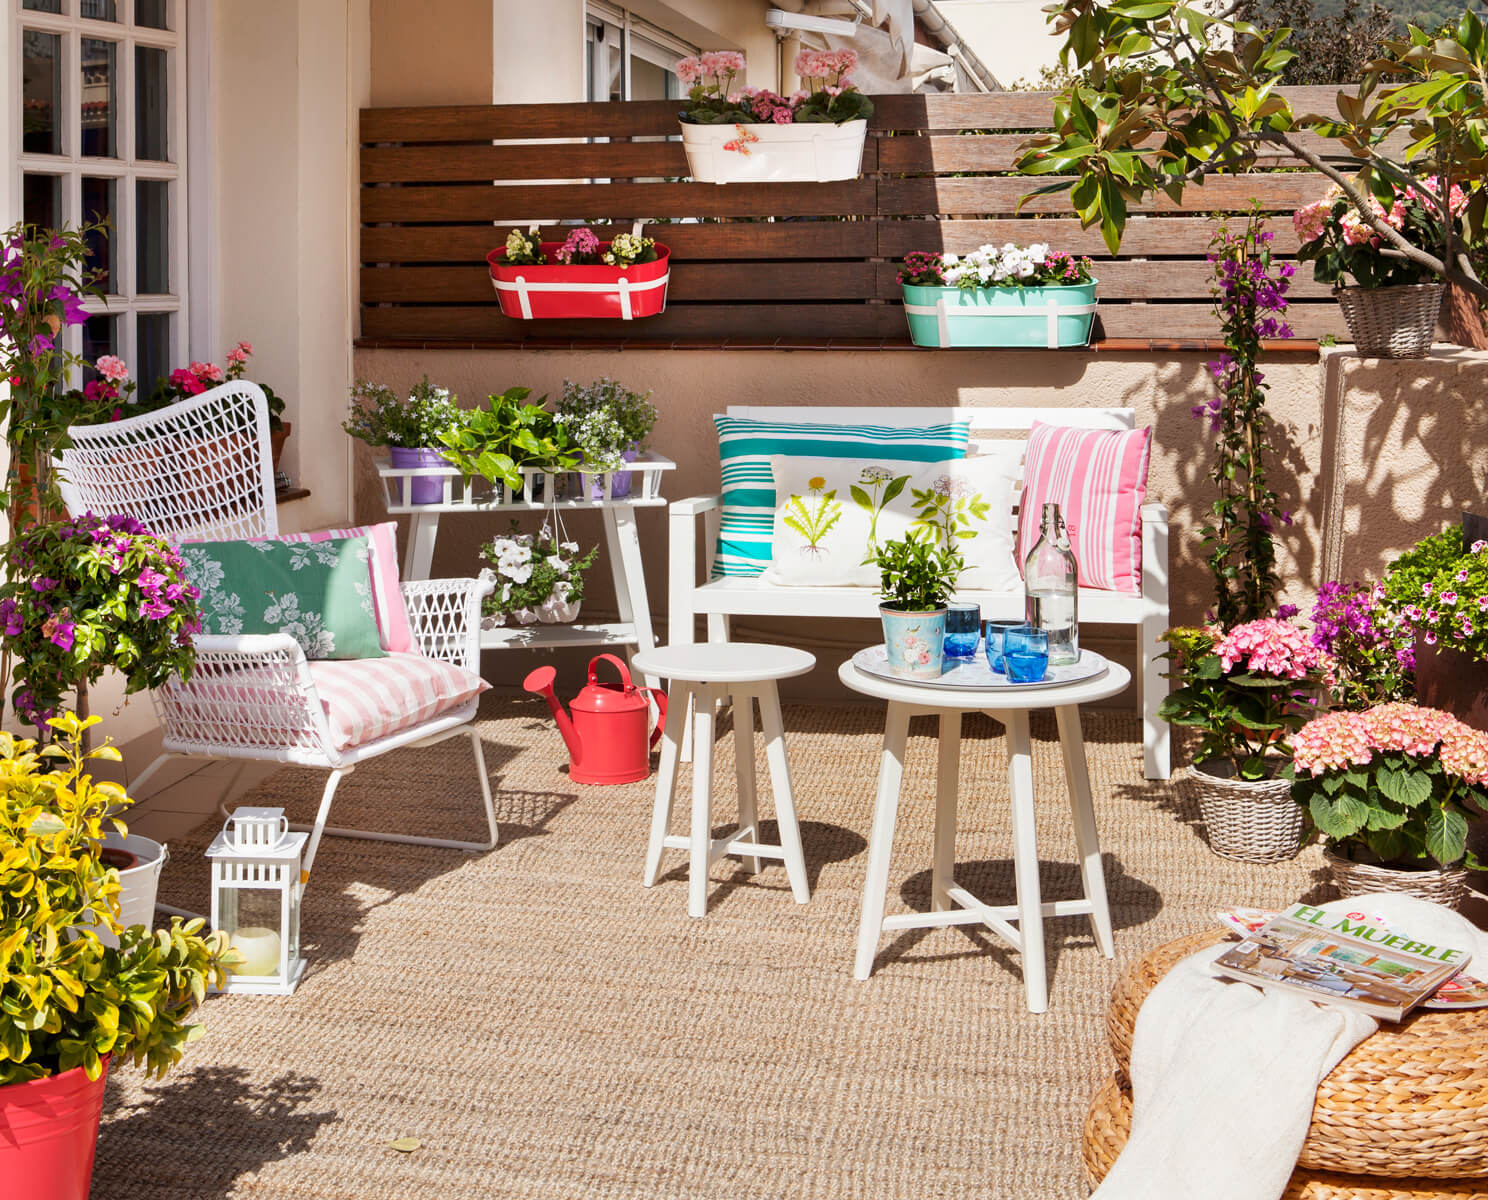 10 Ideas Para Decorar Terrazas Y Balcones Handfie Diy